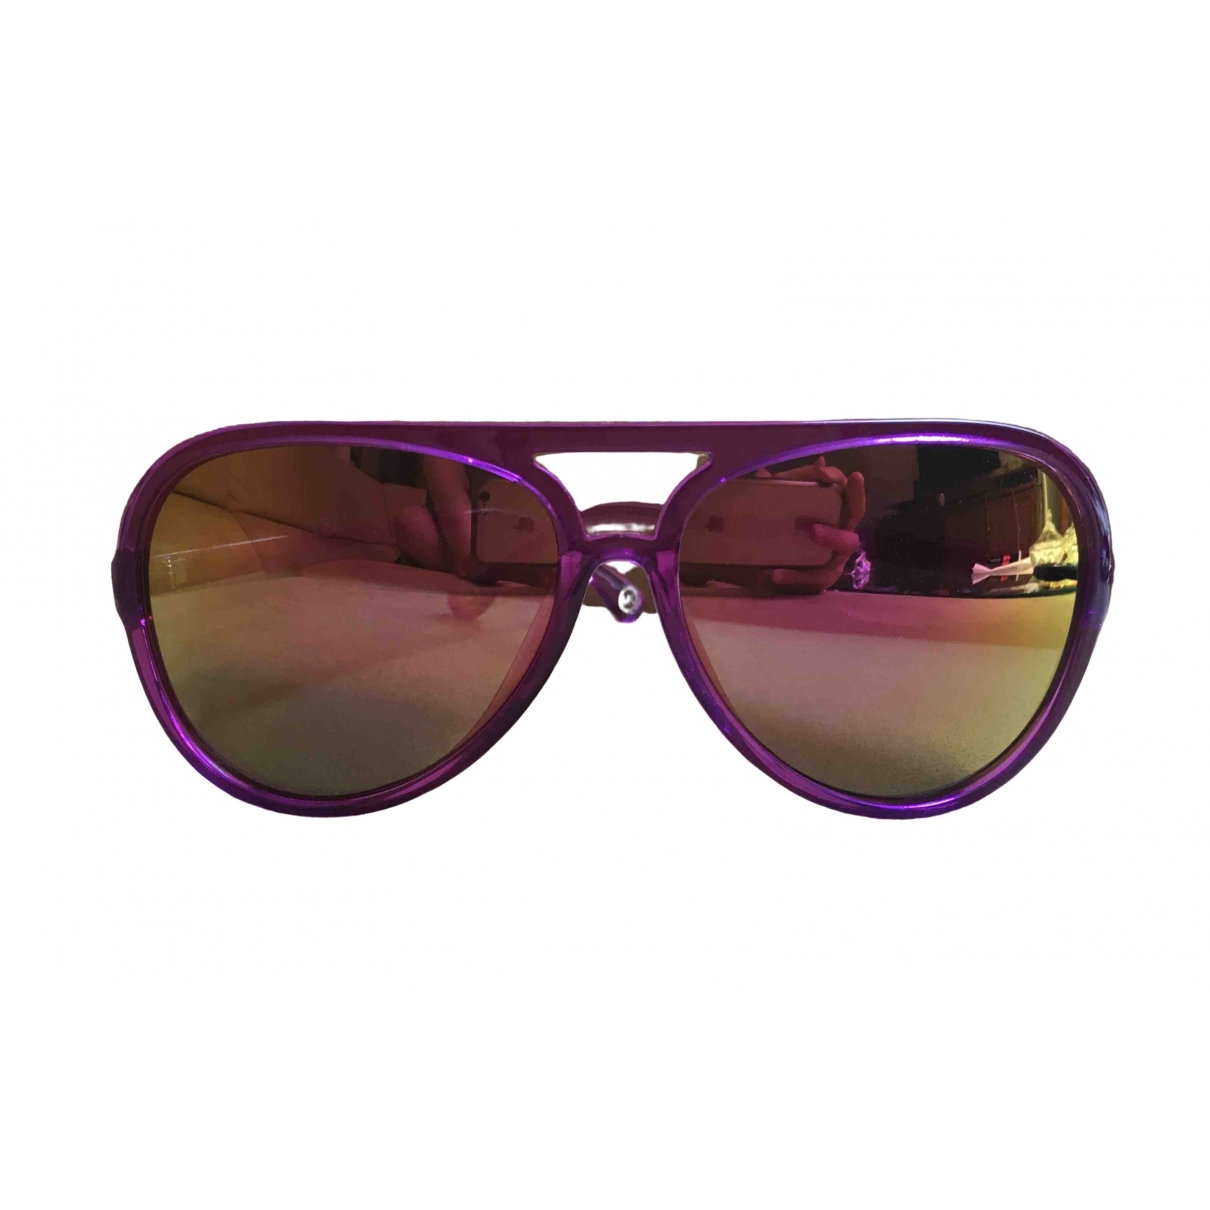 Michael Kors \N Purple Sunglasses for Women \N